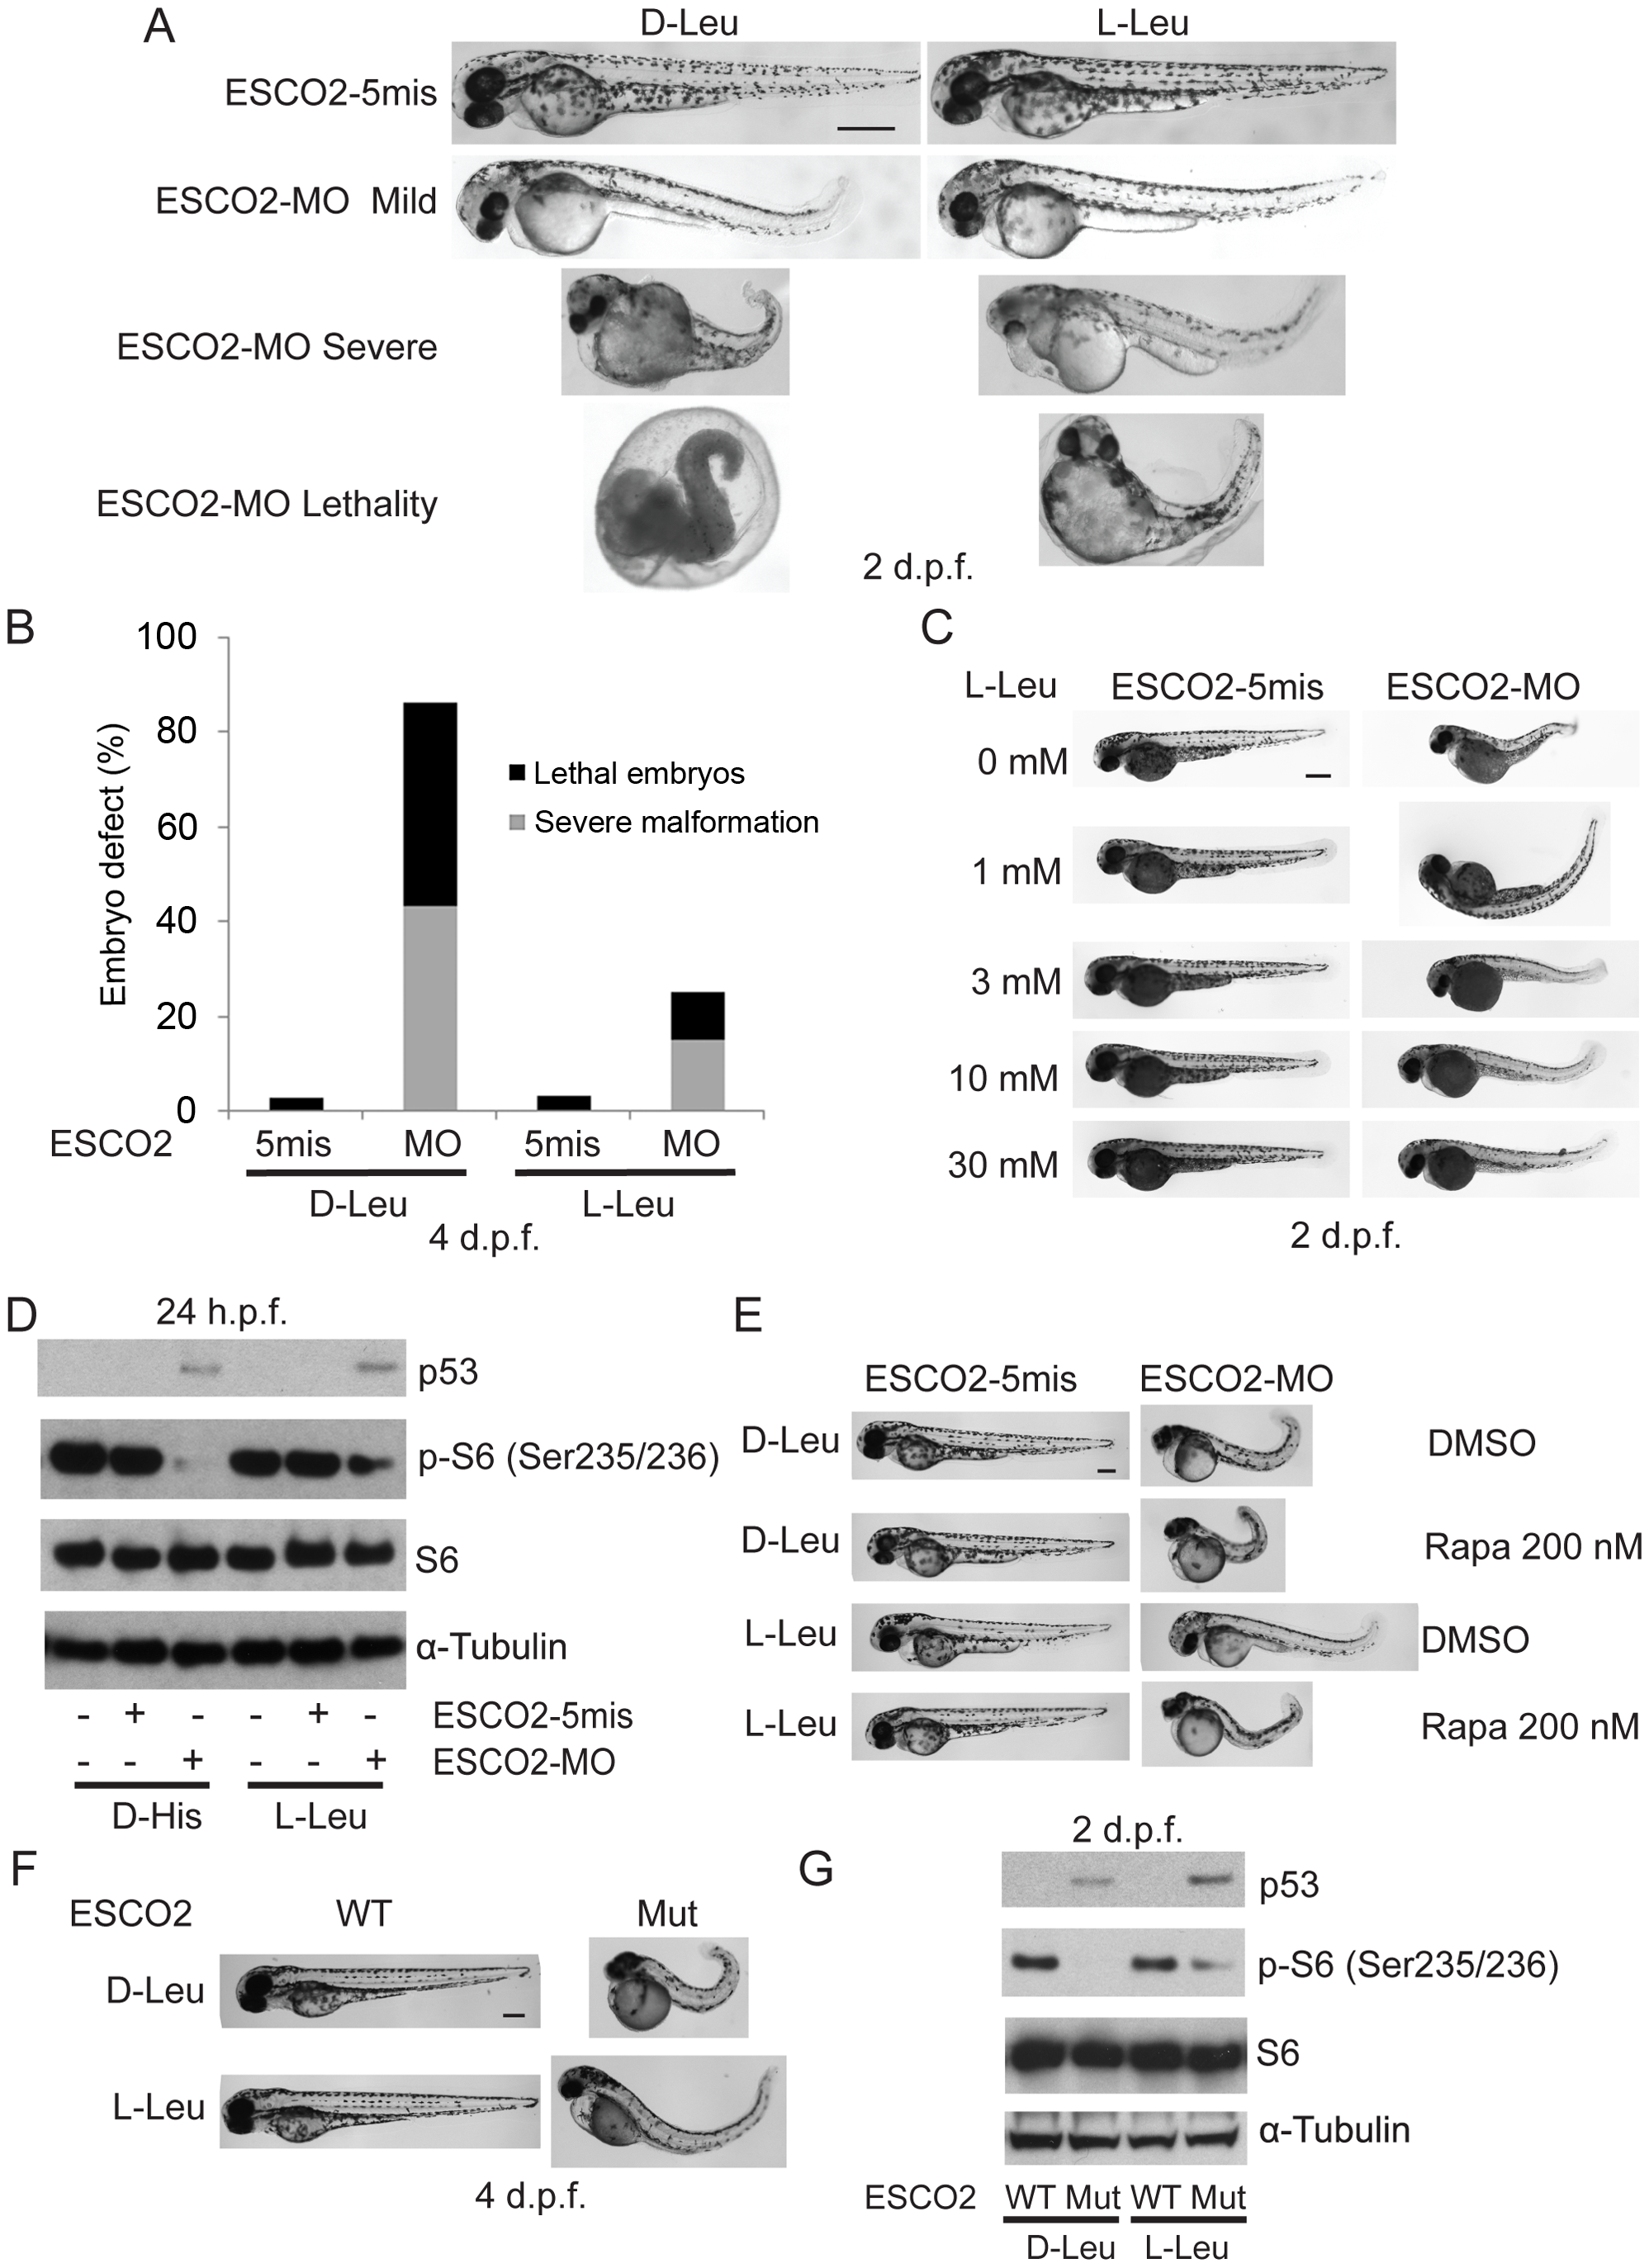 L-leucine partially improved developmental deficiencies of ESCO2 depleted embryos in a TOR pathway-dependent manner.